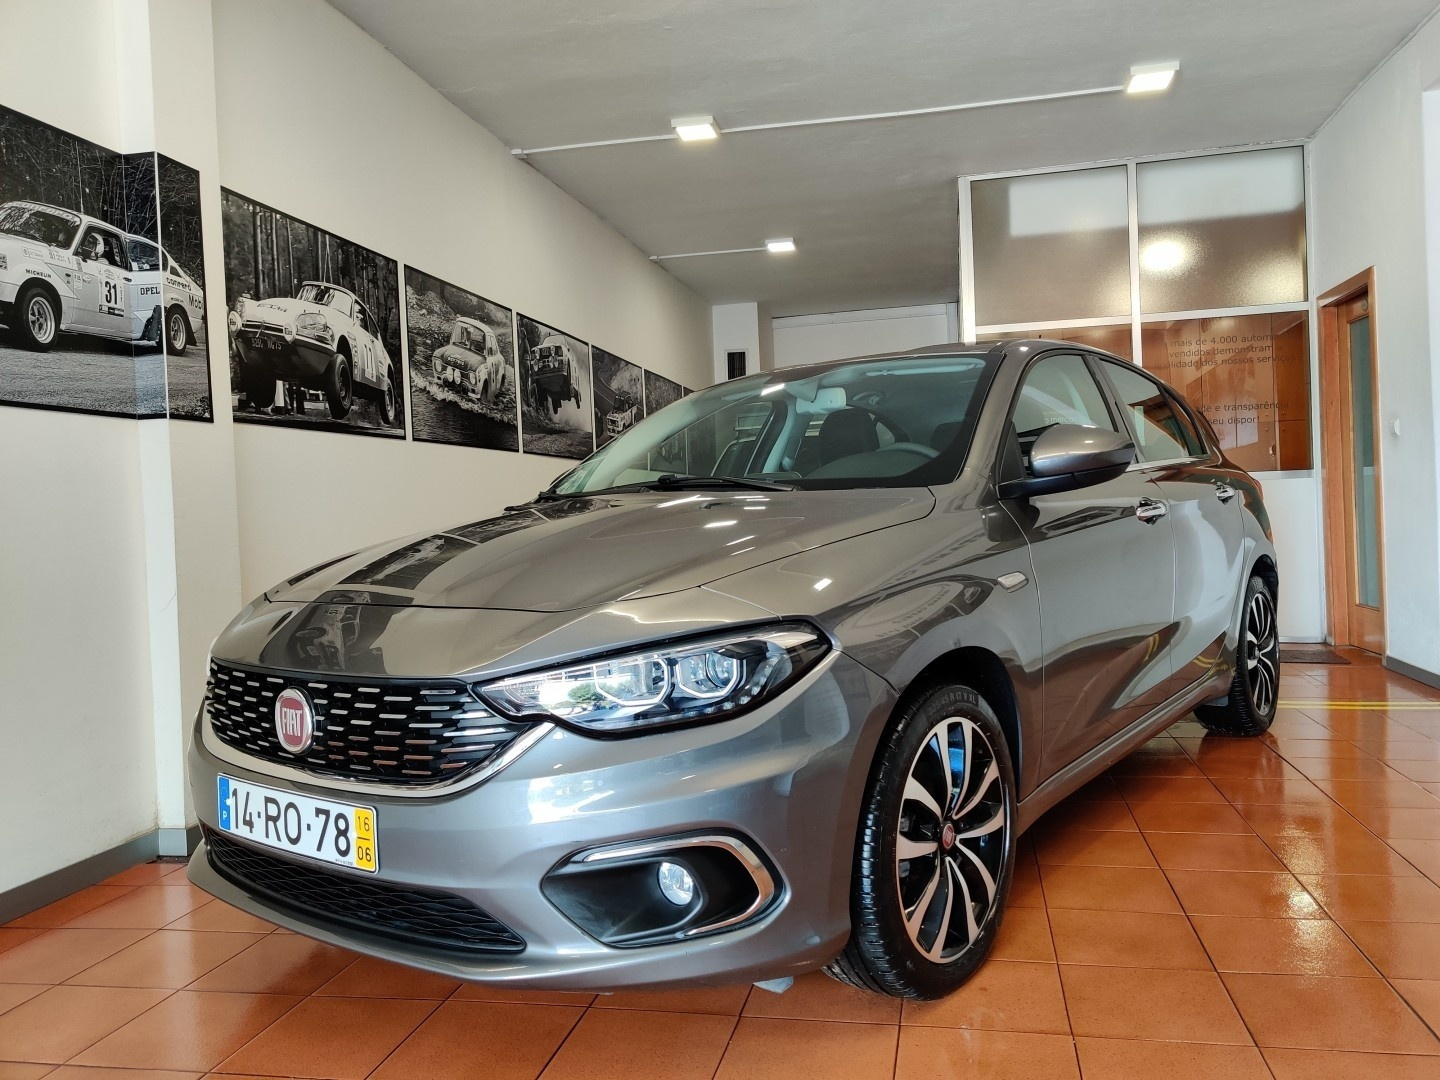 Fiat Tipo 1.6 JTDM Lounge